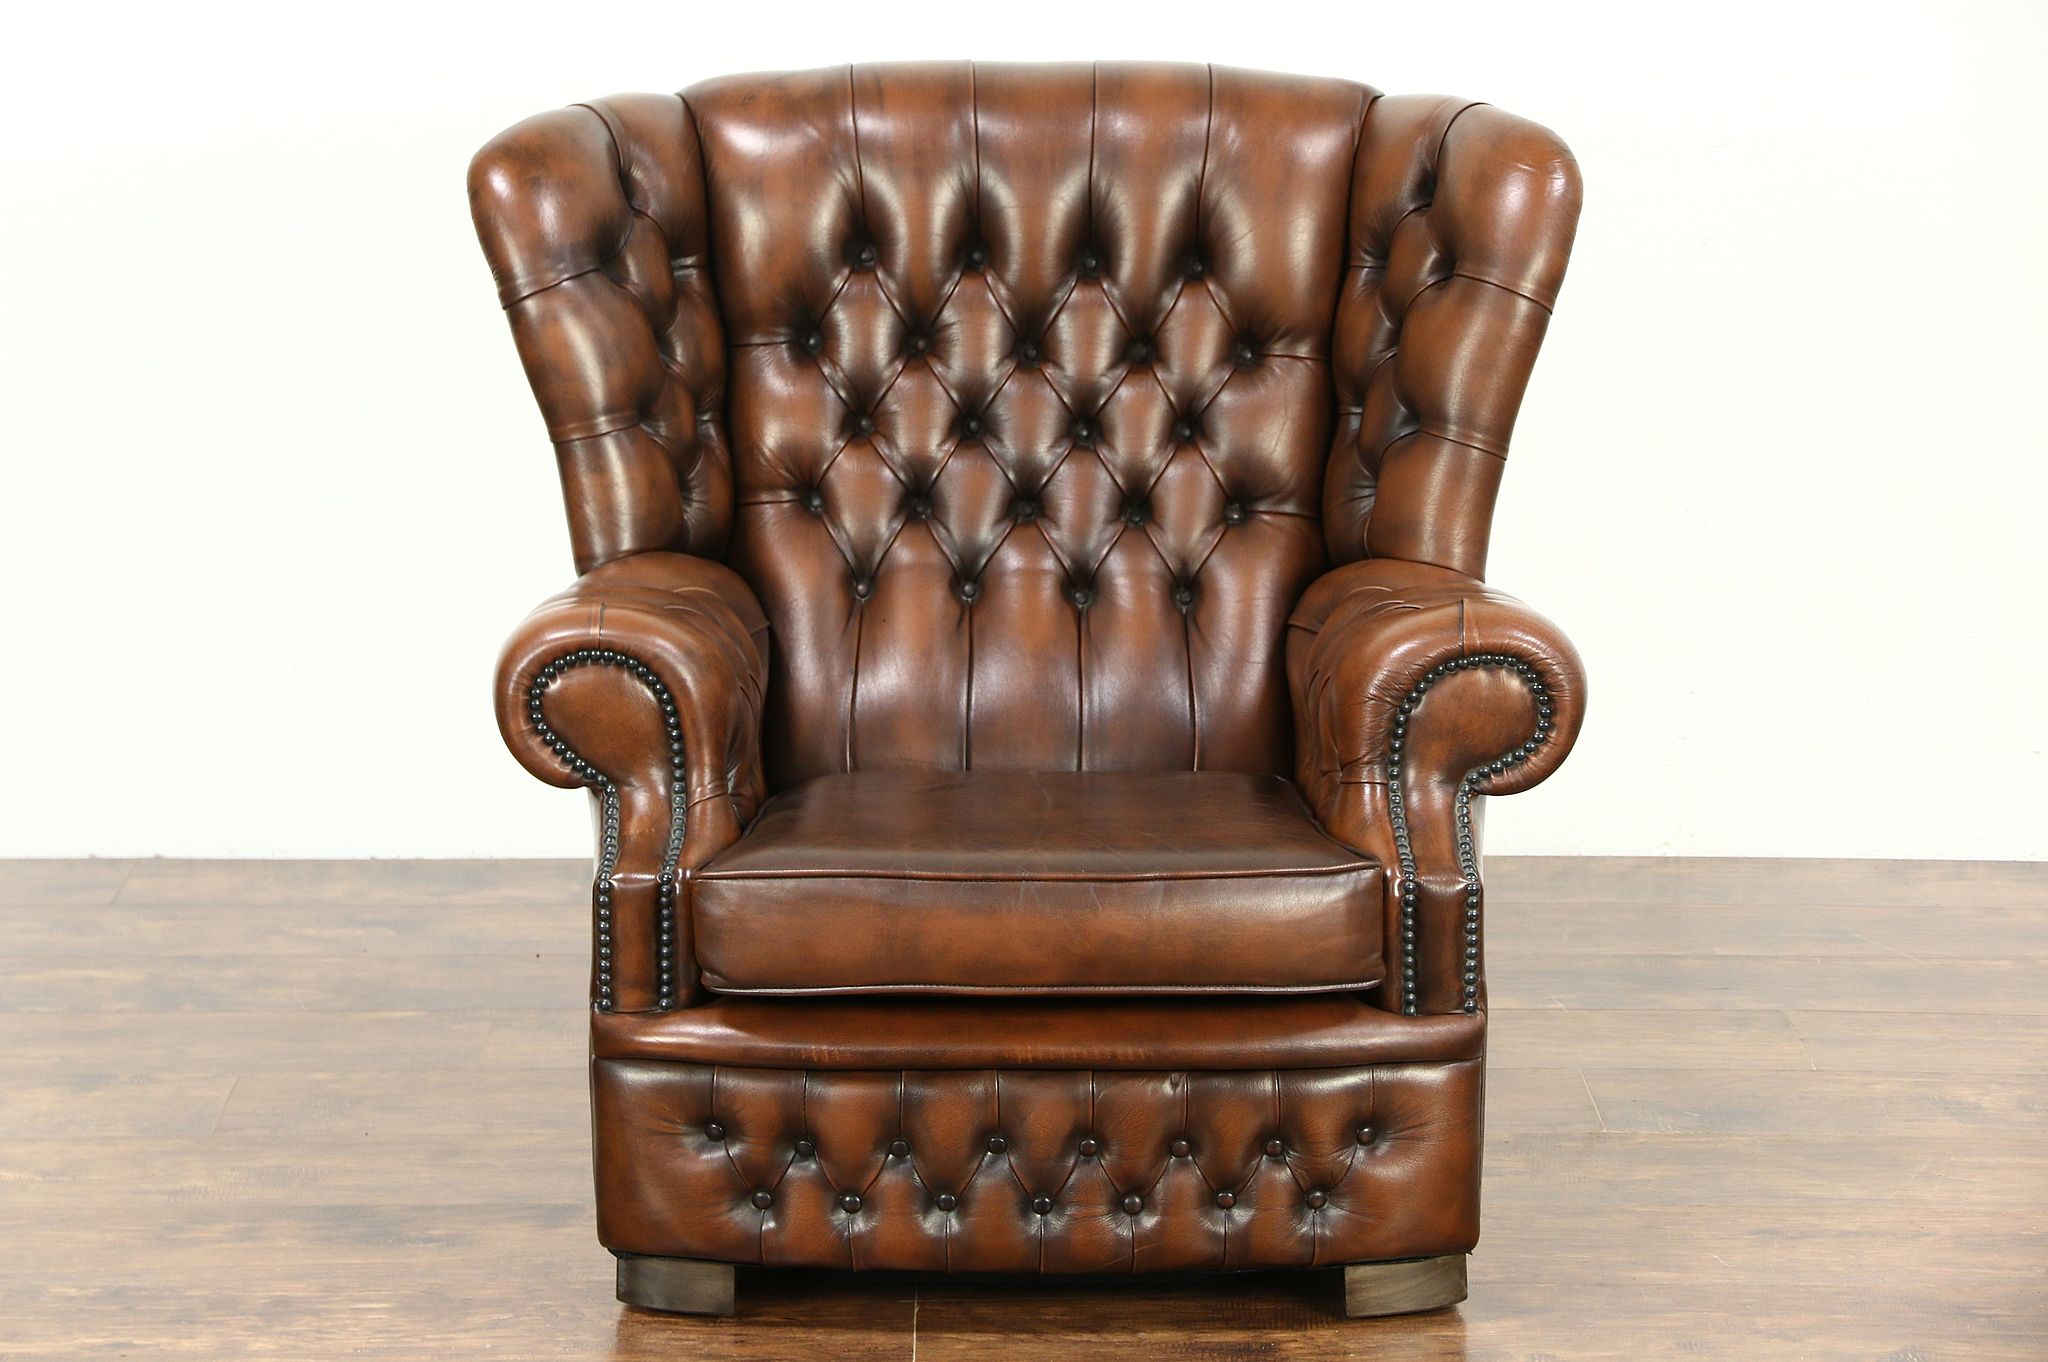 Sold Tufted Brown Leather Vintage Scandinavian Wing